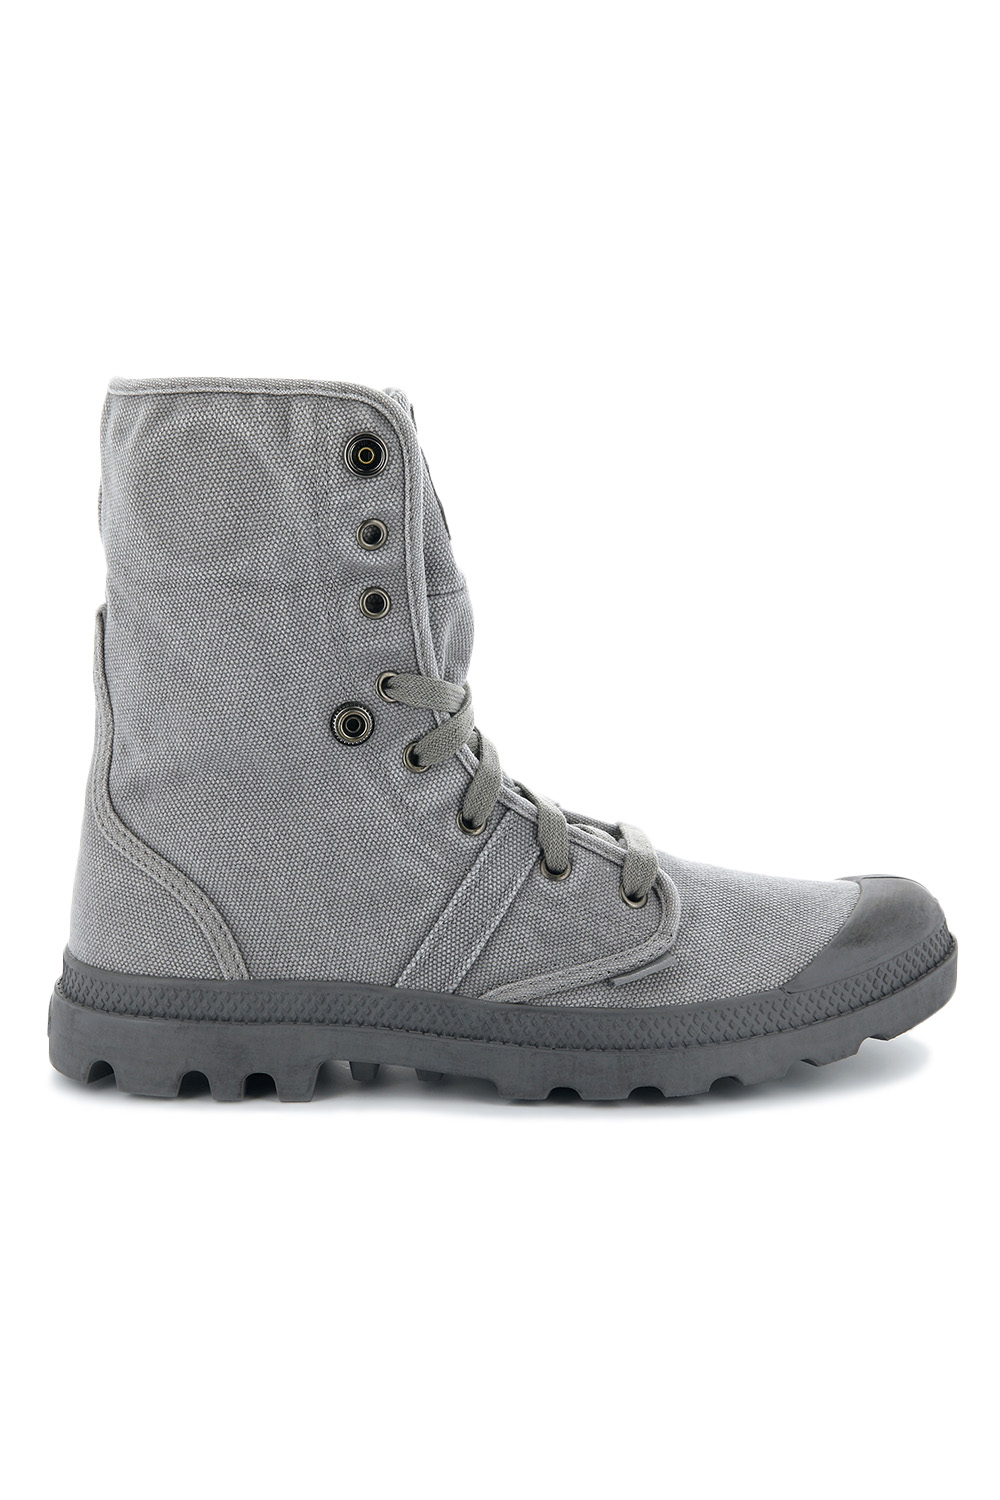 thumbnail 5 - Palladium Mens Pallabrouse Baggy Combat Military Desert Canvas Ankle Boots